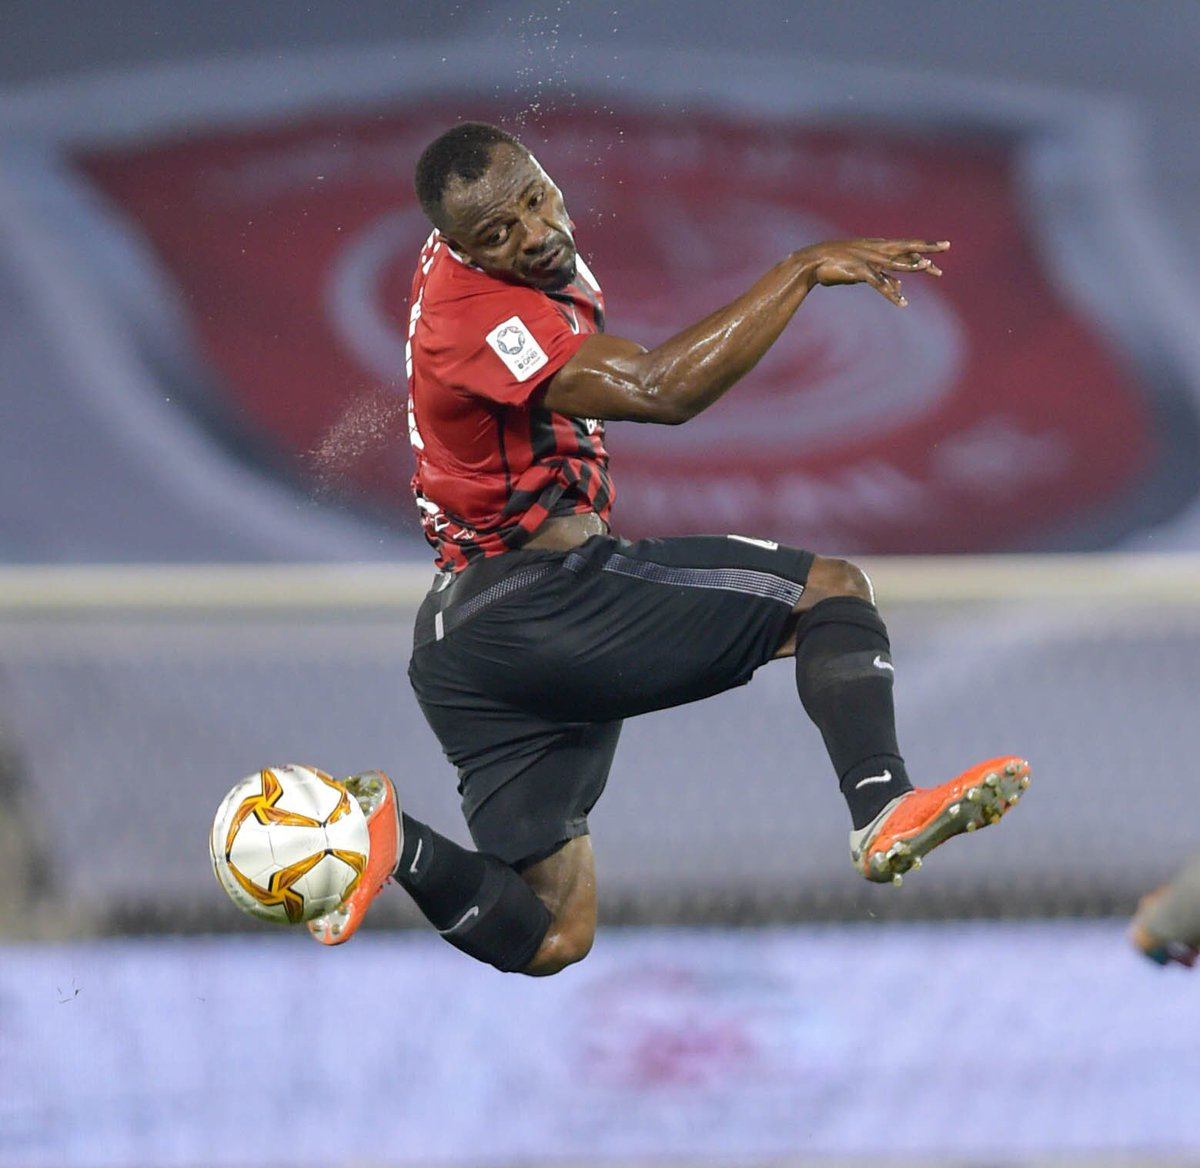 Al Raheeb extends the competition at the top of the #QNBStarsLeague after winning today's match against Duhail 1-0. A goal scored by Yohan Boli. Al Rayyan has now a total of 31 points reducing the difference with Duhail to 2 points only. <br>http://pic.twitter.com/h7RyDK5T93